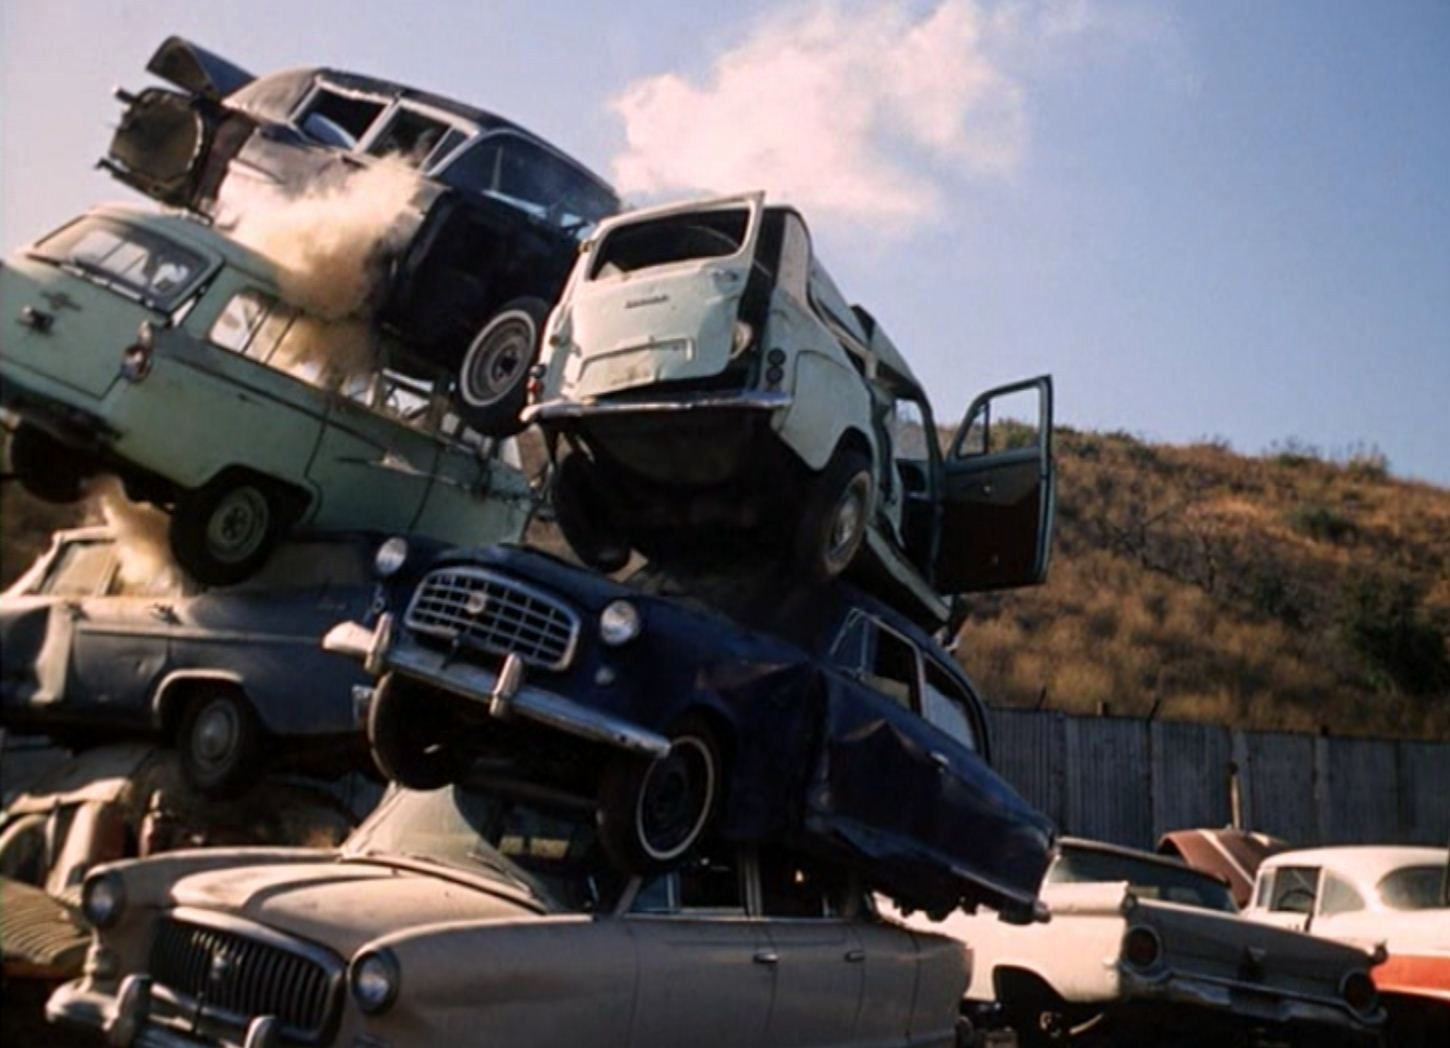 images of scrap yards | Just a car guy : the Gnome Mobile was a 1967 ...